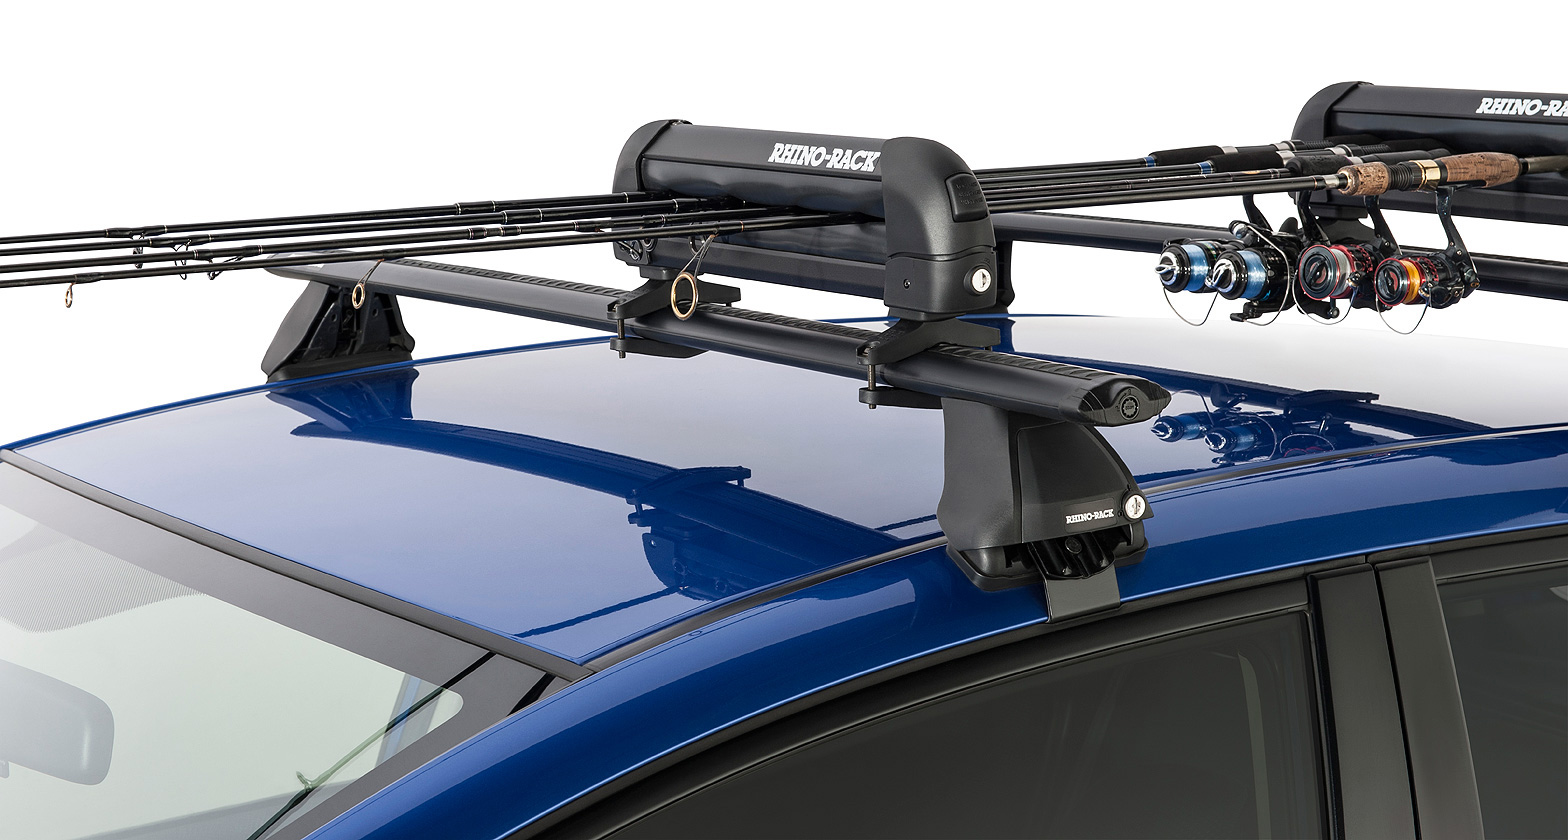 Ski carrier and fishing rod holder holds 3 skis or 2 for Roof rack fishing rod holder